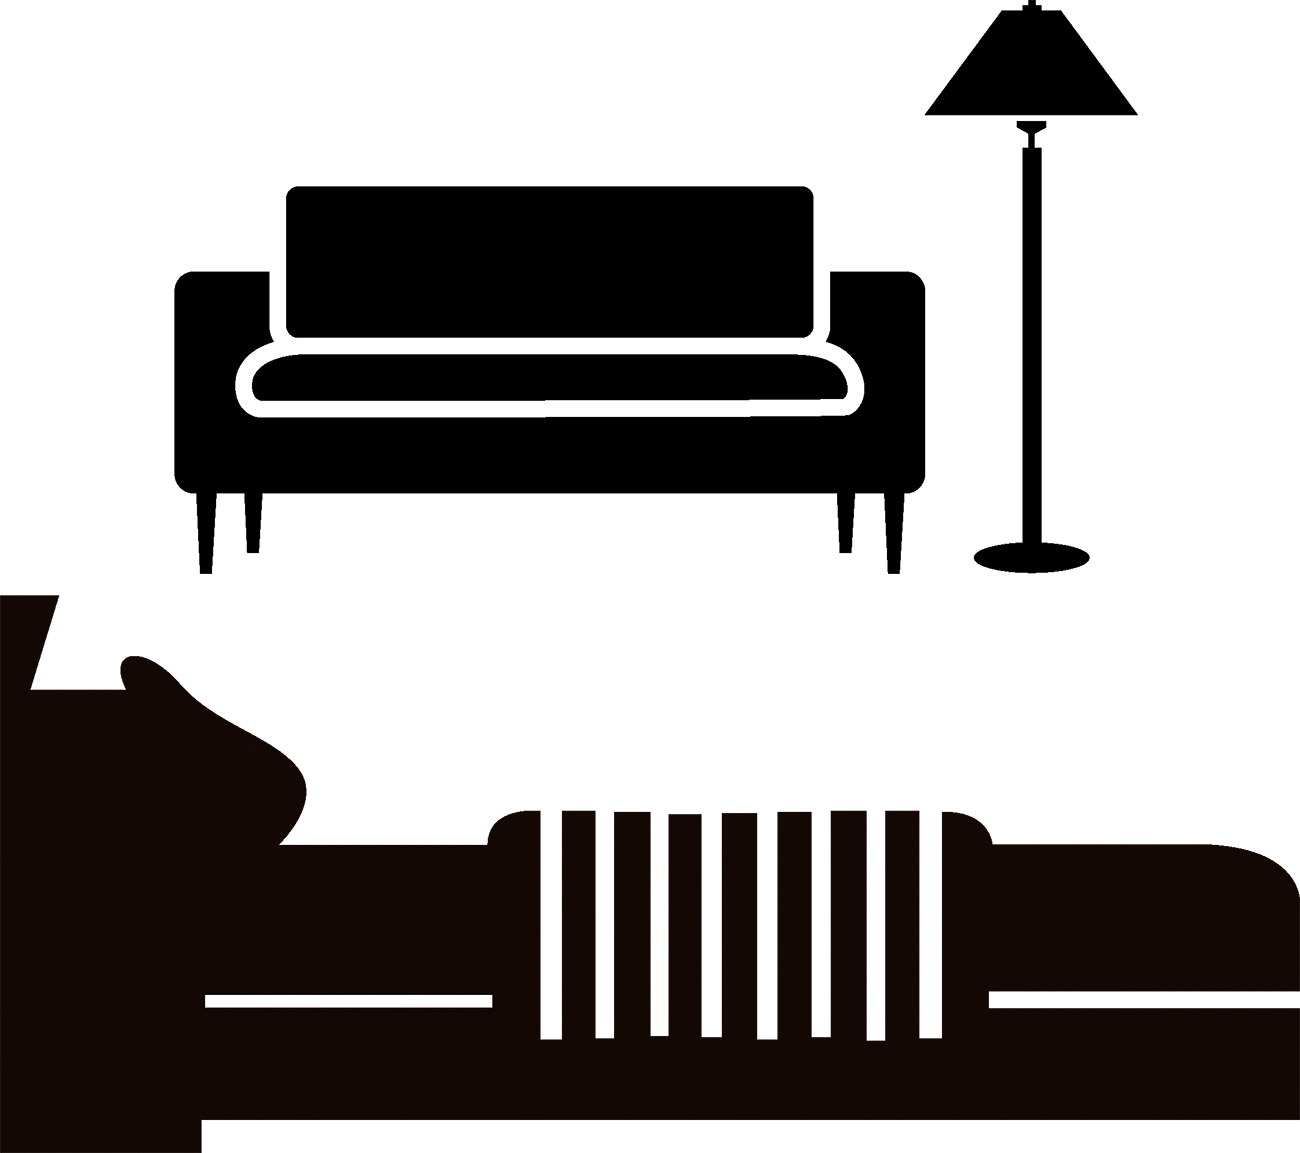 Couch silhouette png. Bed furniture sofa transprent